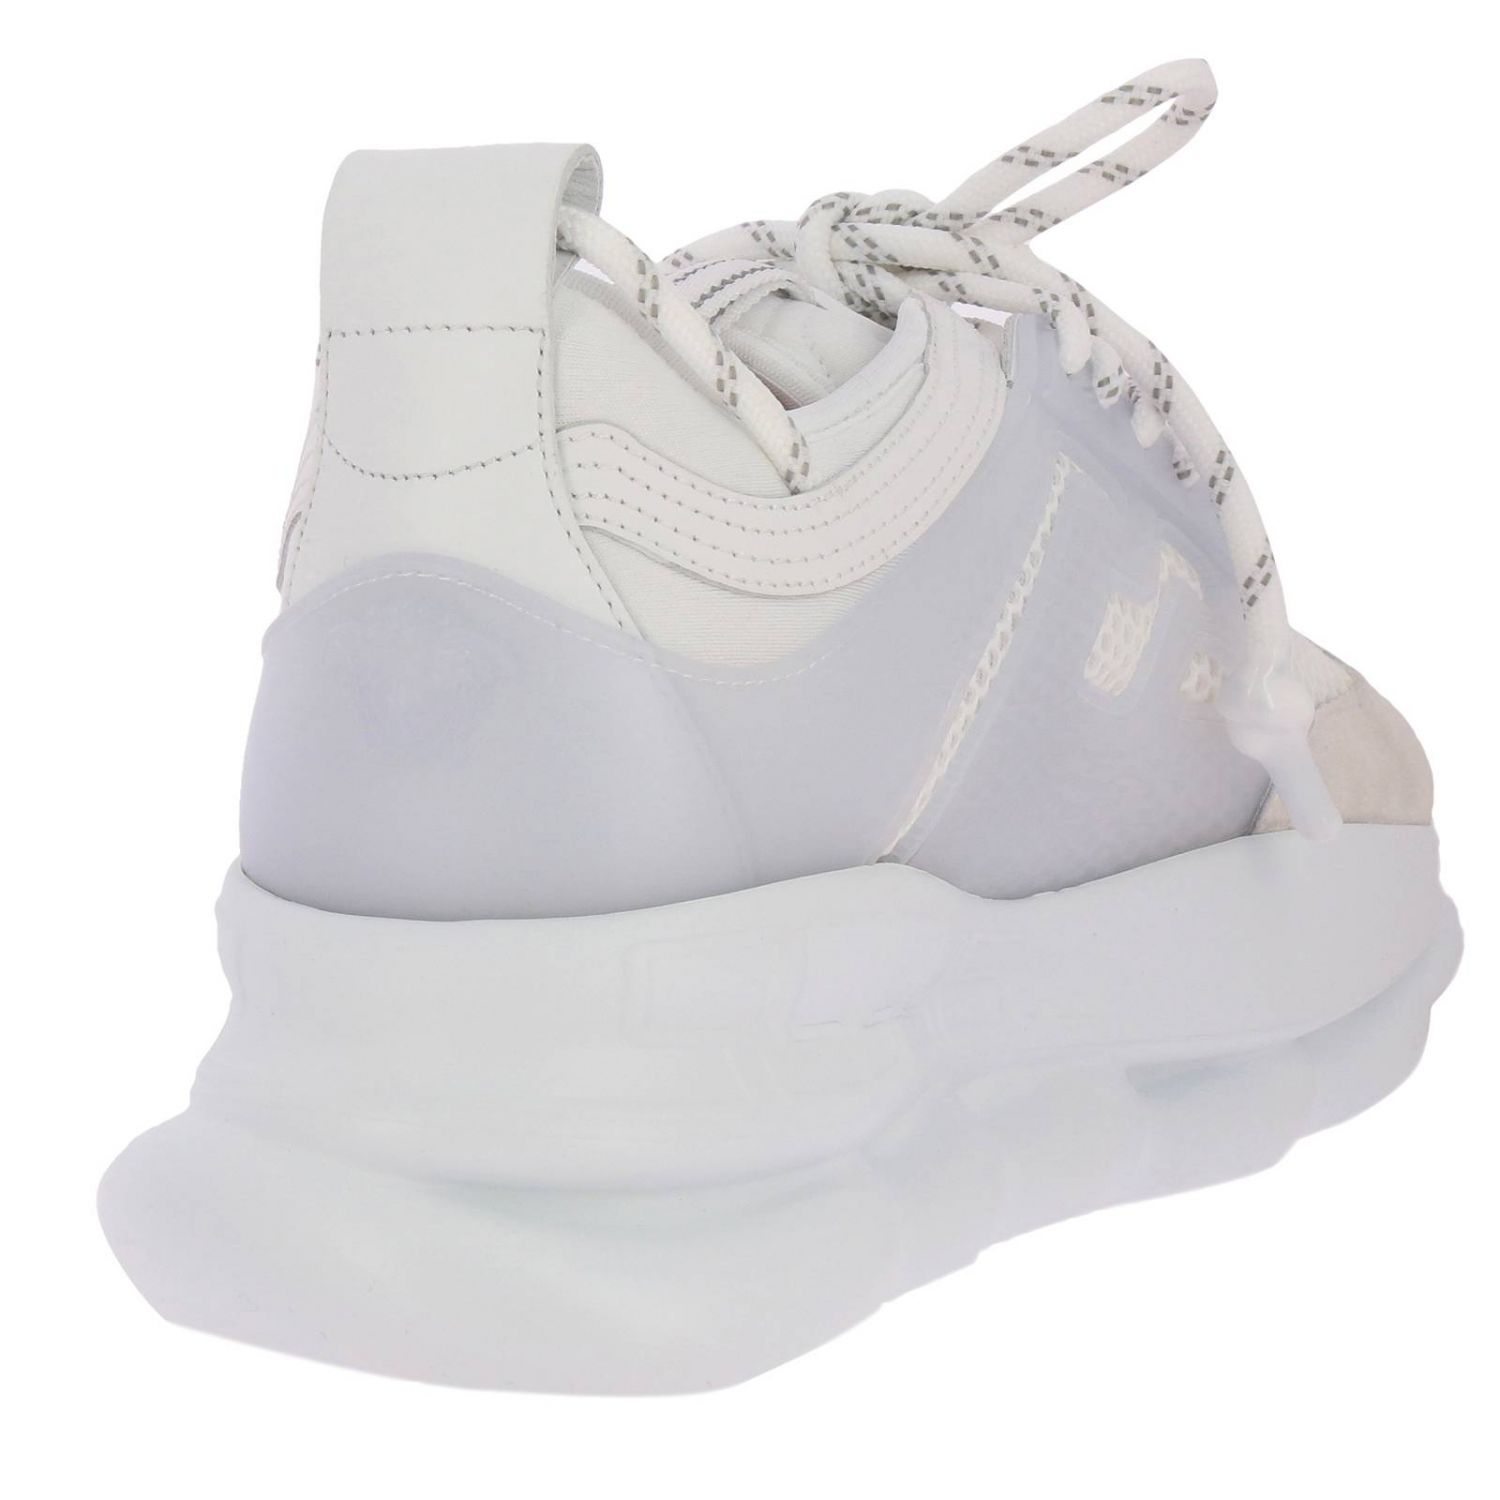 Chaussures homme Versace blanc 4